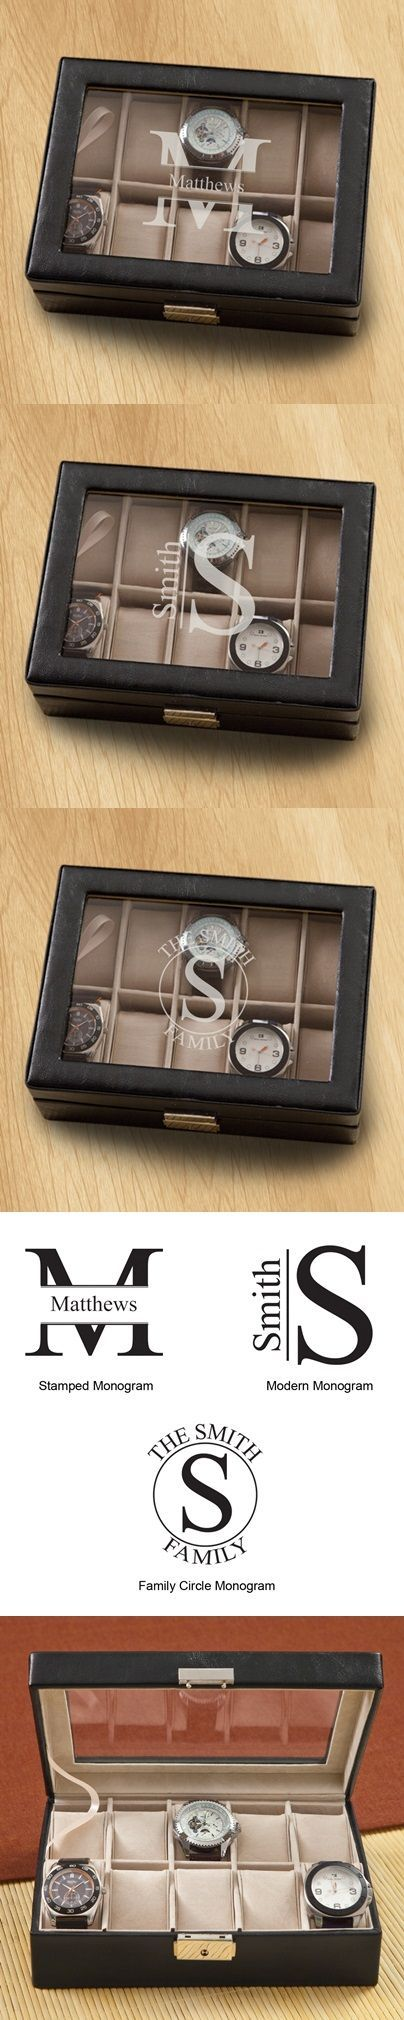 Monogrammed Men's Hinged-Lid Black Leather Watch Box